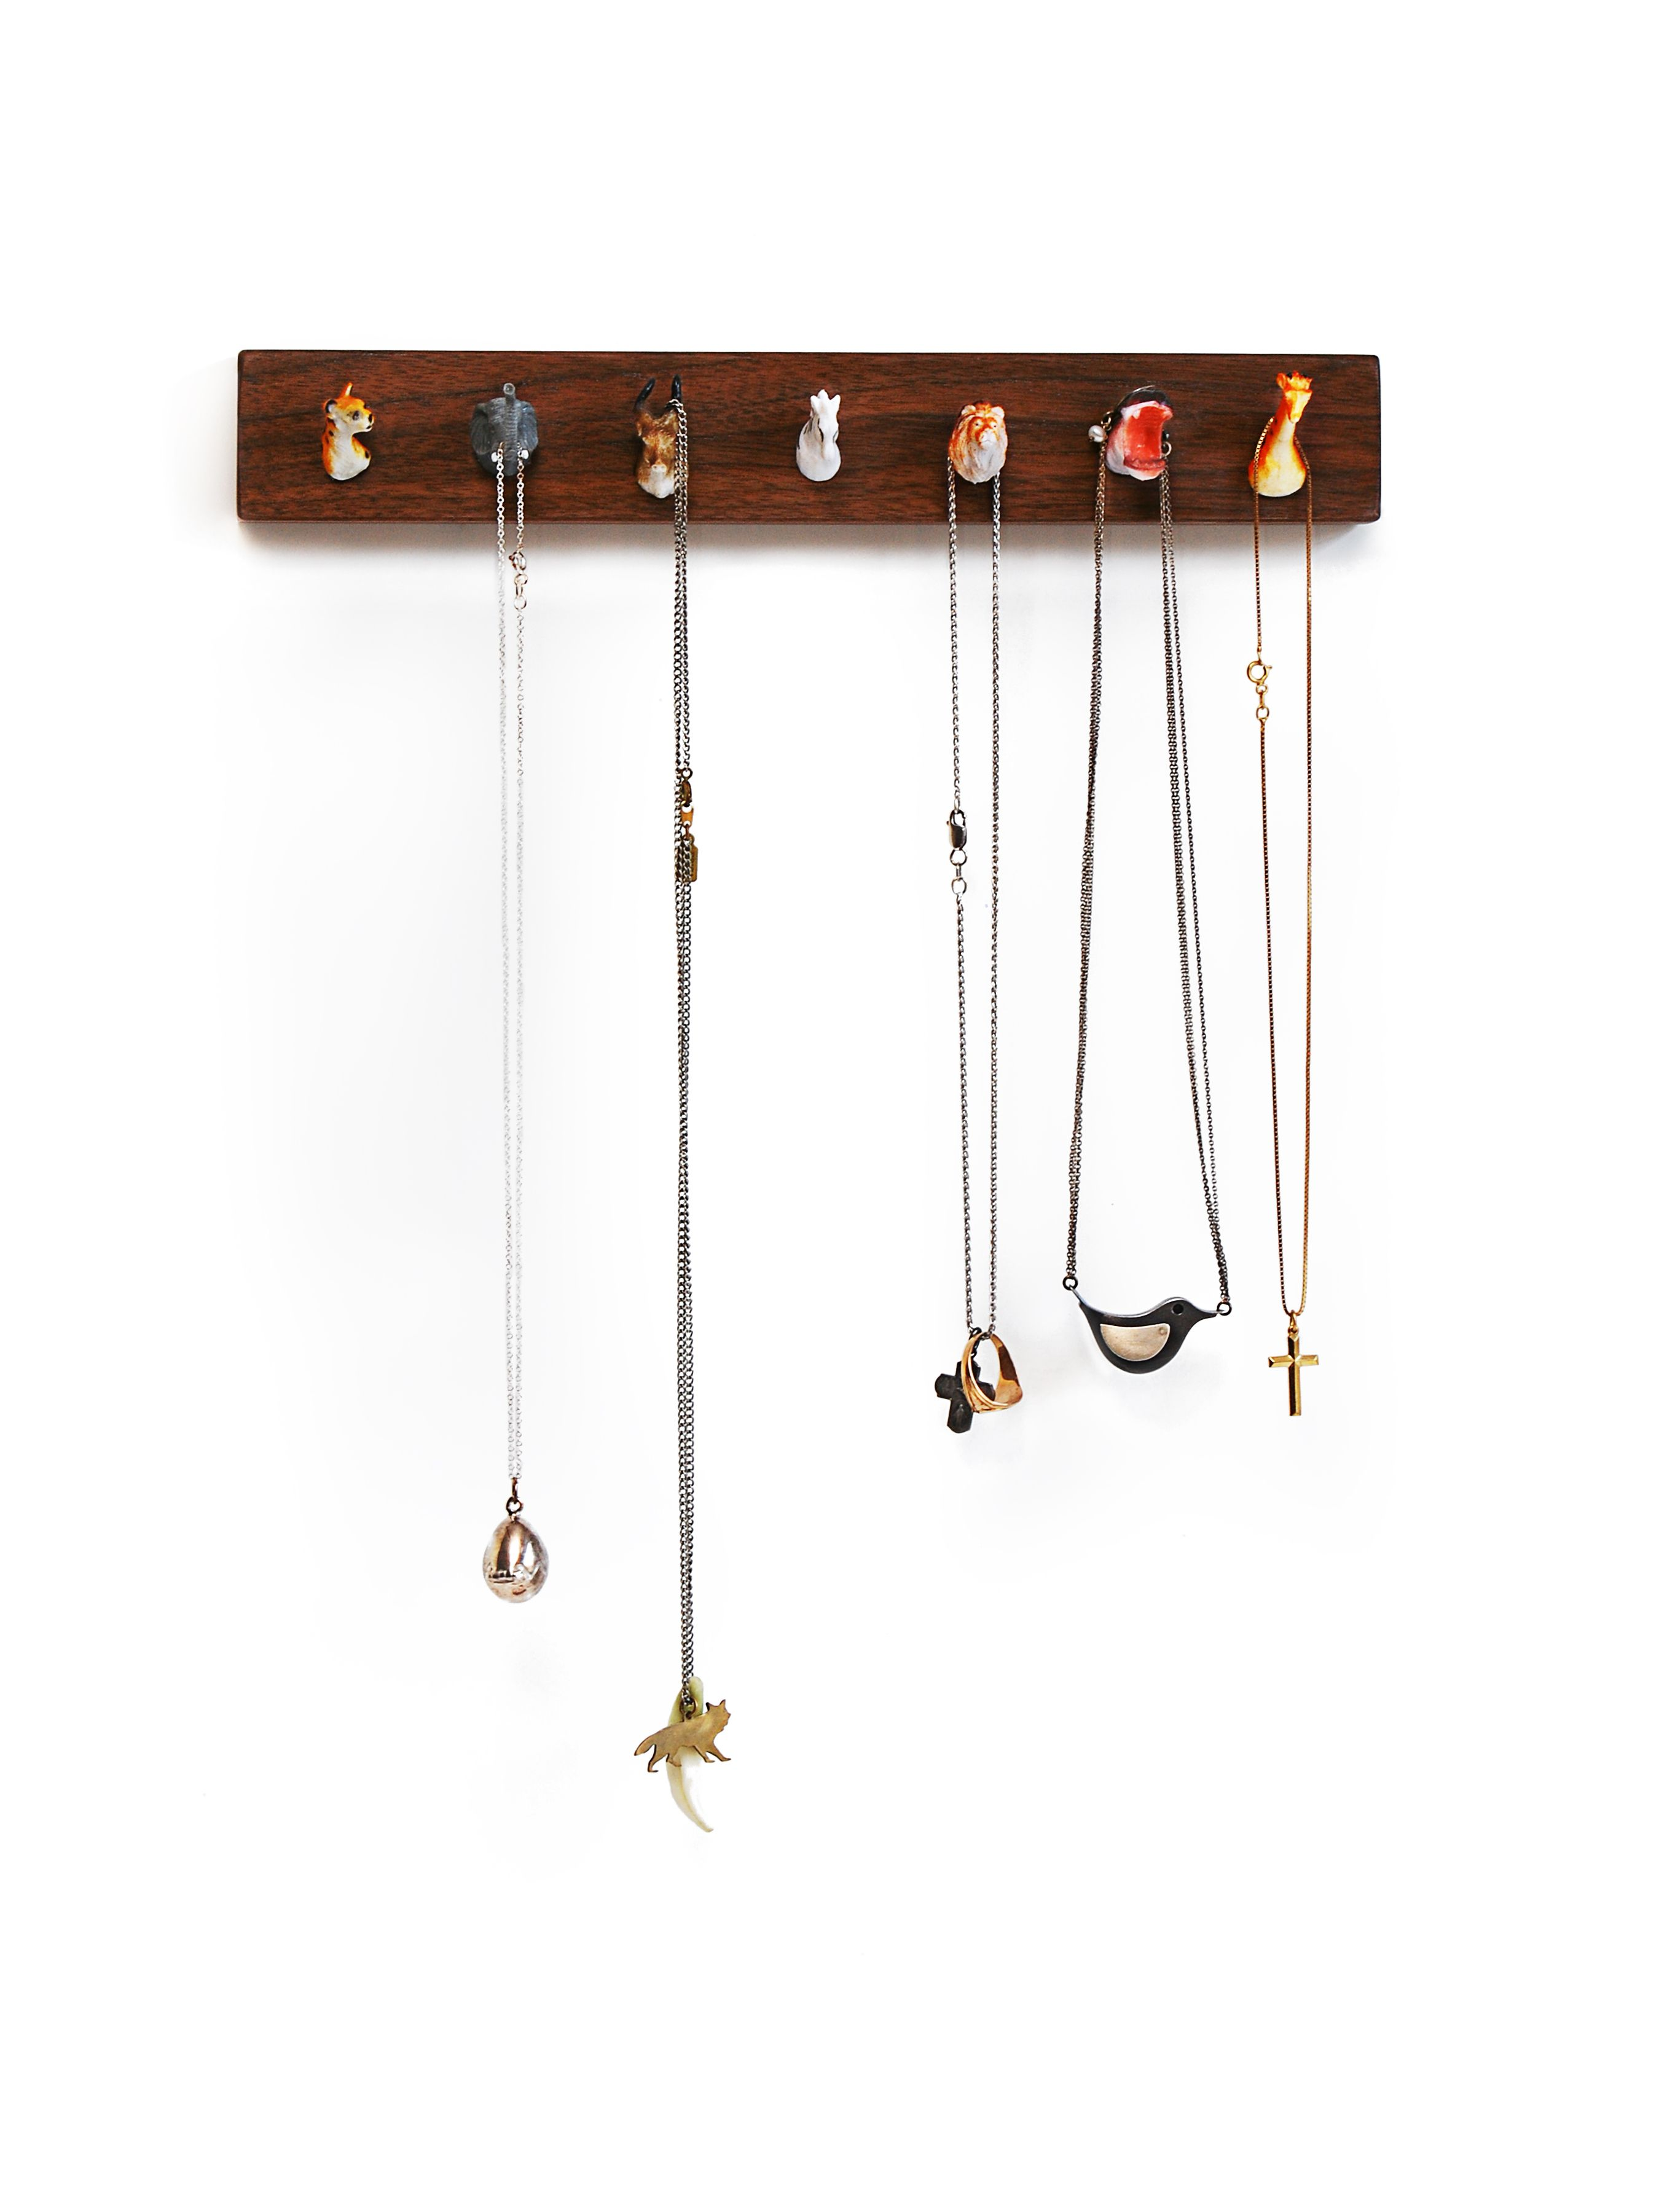 pack rack jewelry hanger from Steph Mantis pretty things i wish